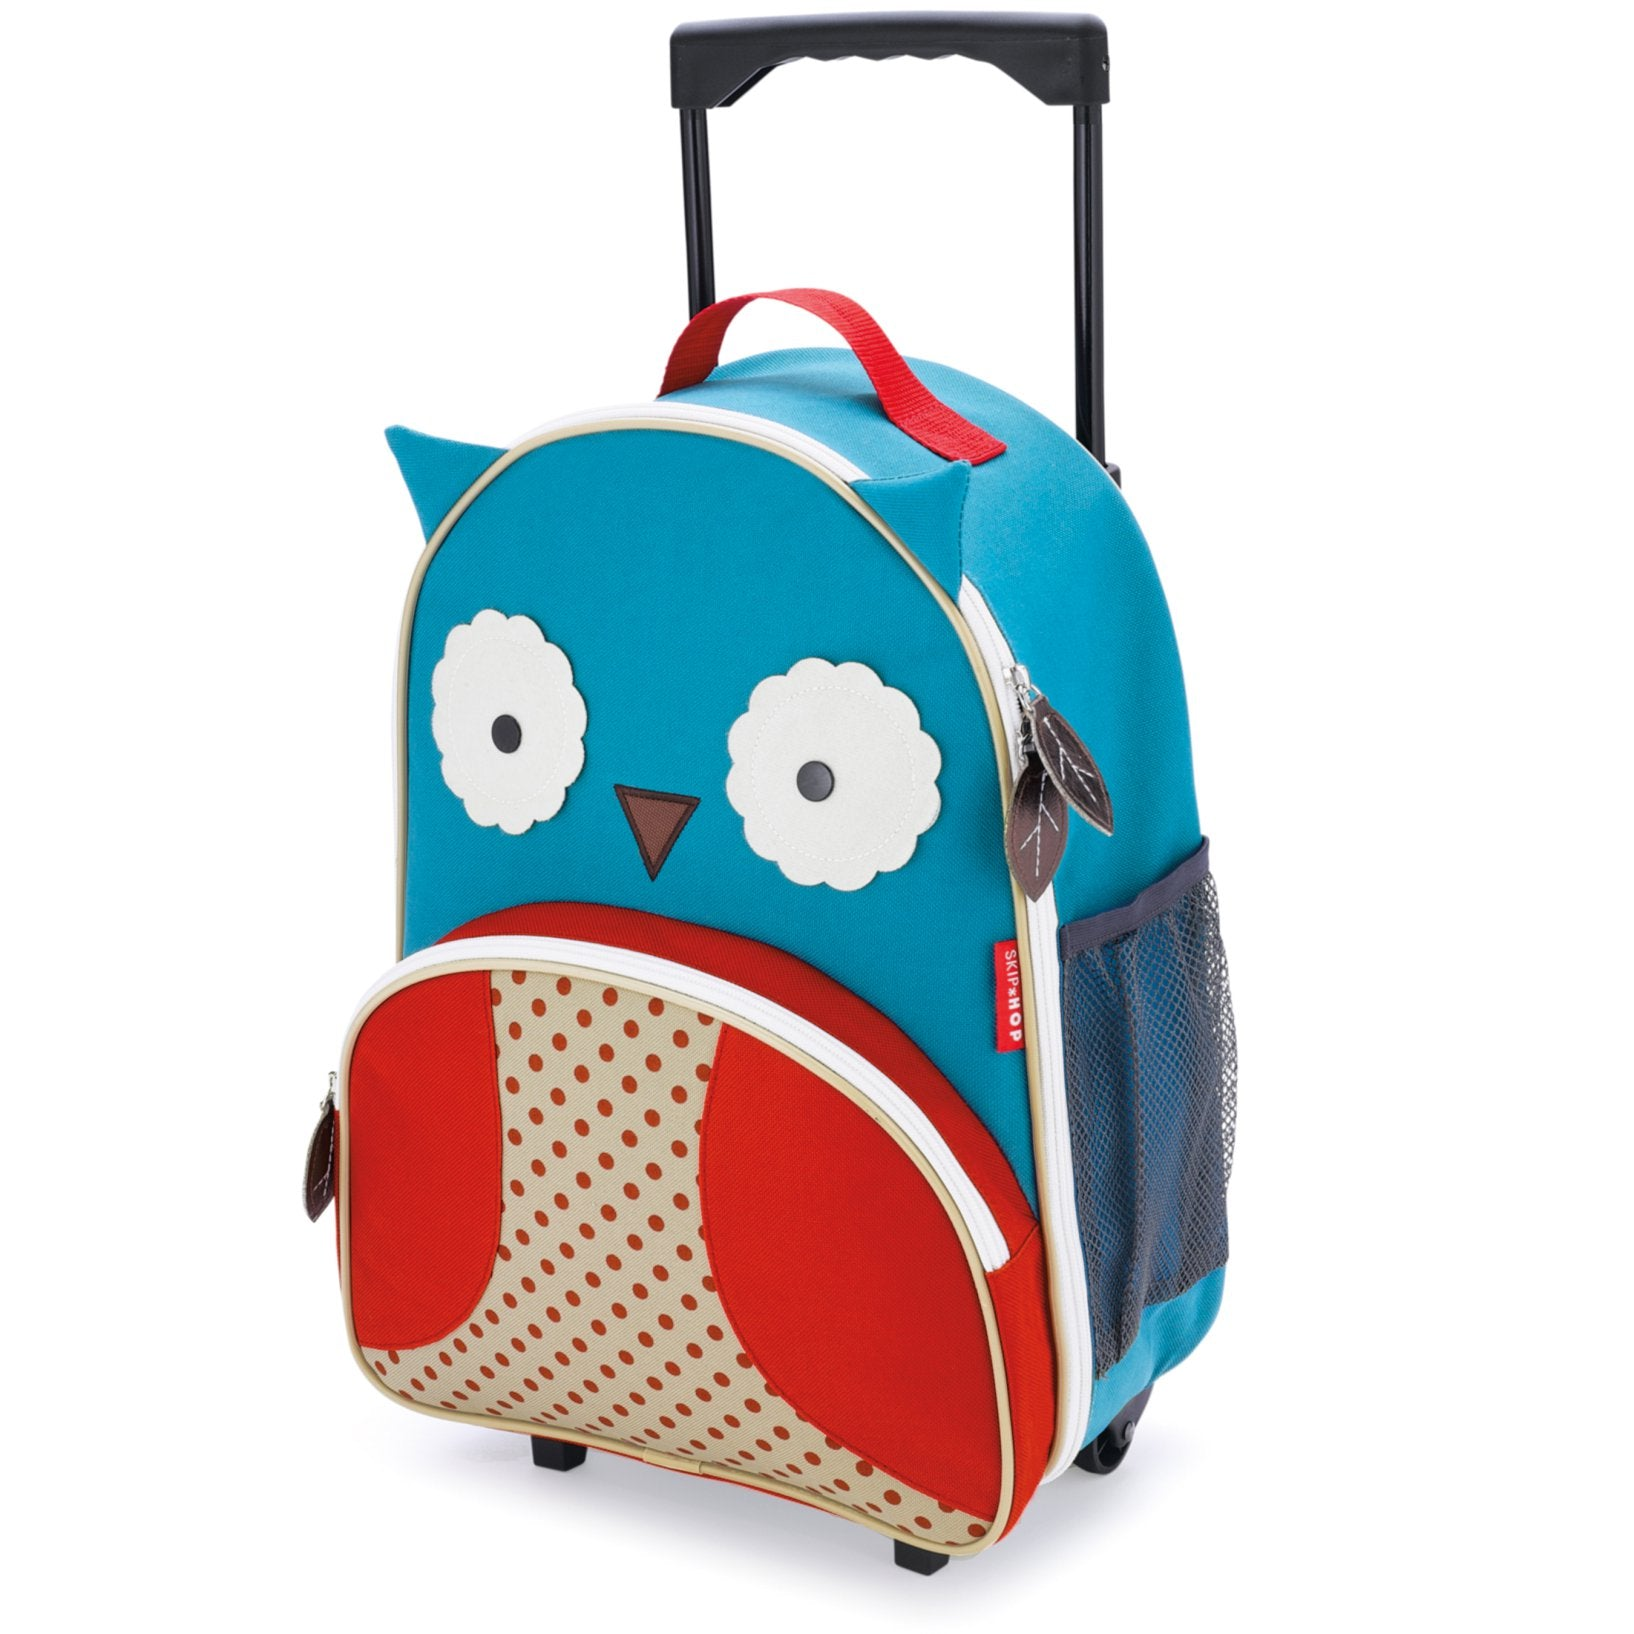 Skip Hop Zoo Luggage Kids Rolling Luggage in Owl